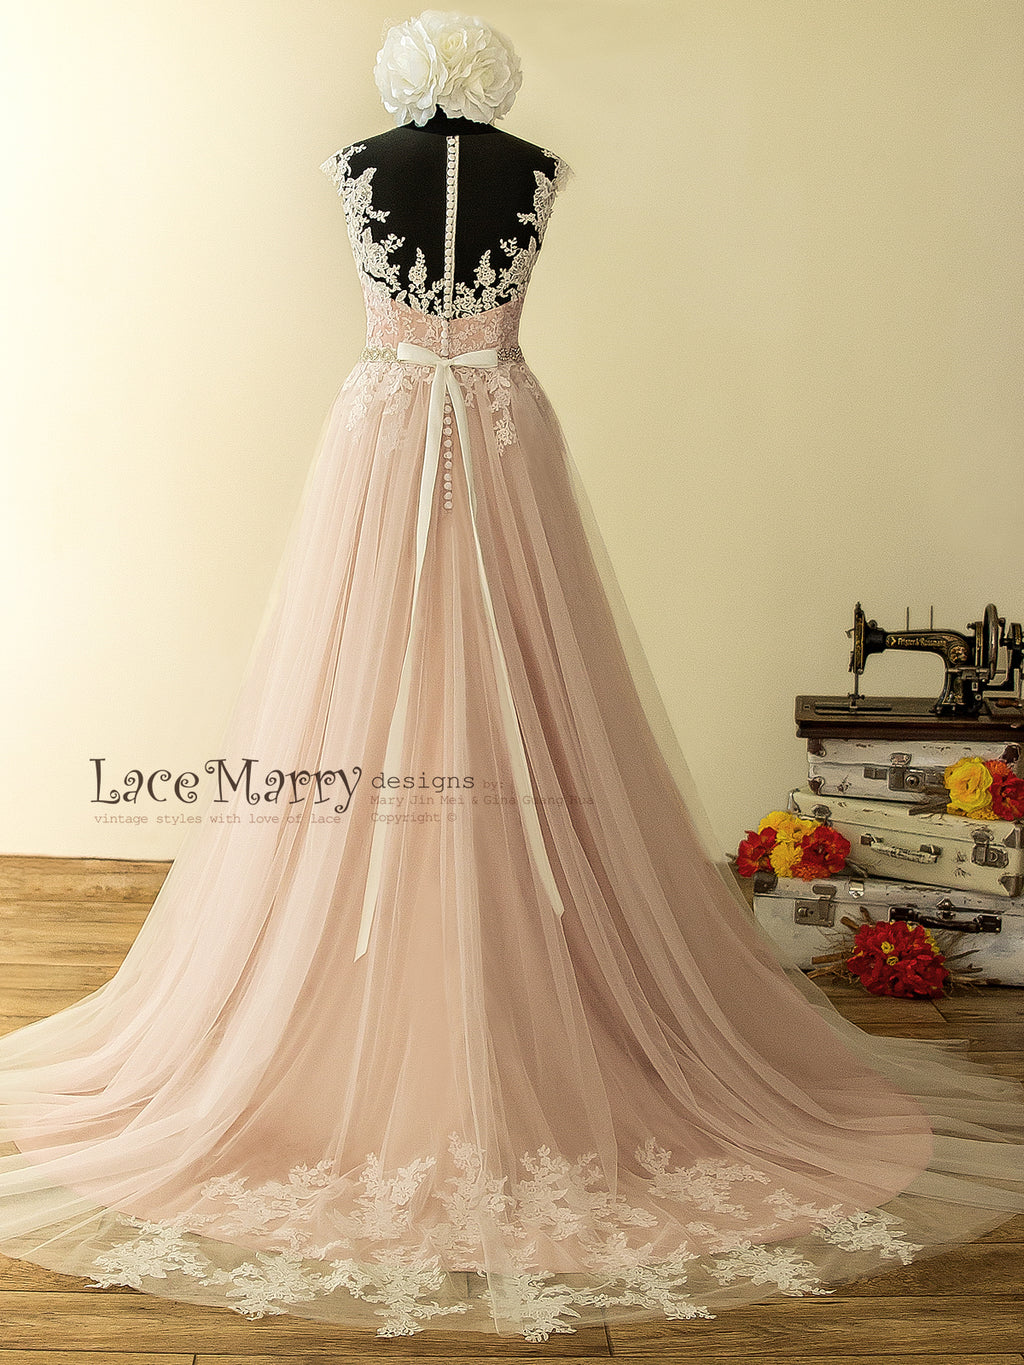 017774cf259 ... Illusion Champagne Dusty Pink Wedding Dress with Airy Tulle Skirt and  Rose Flower Lace Appliqué